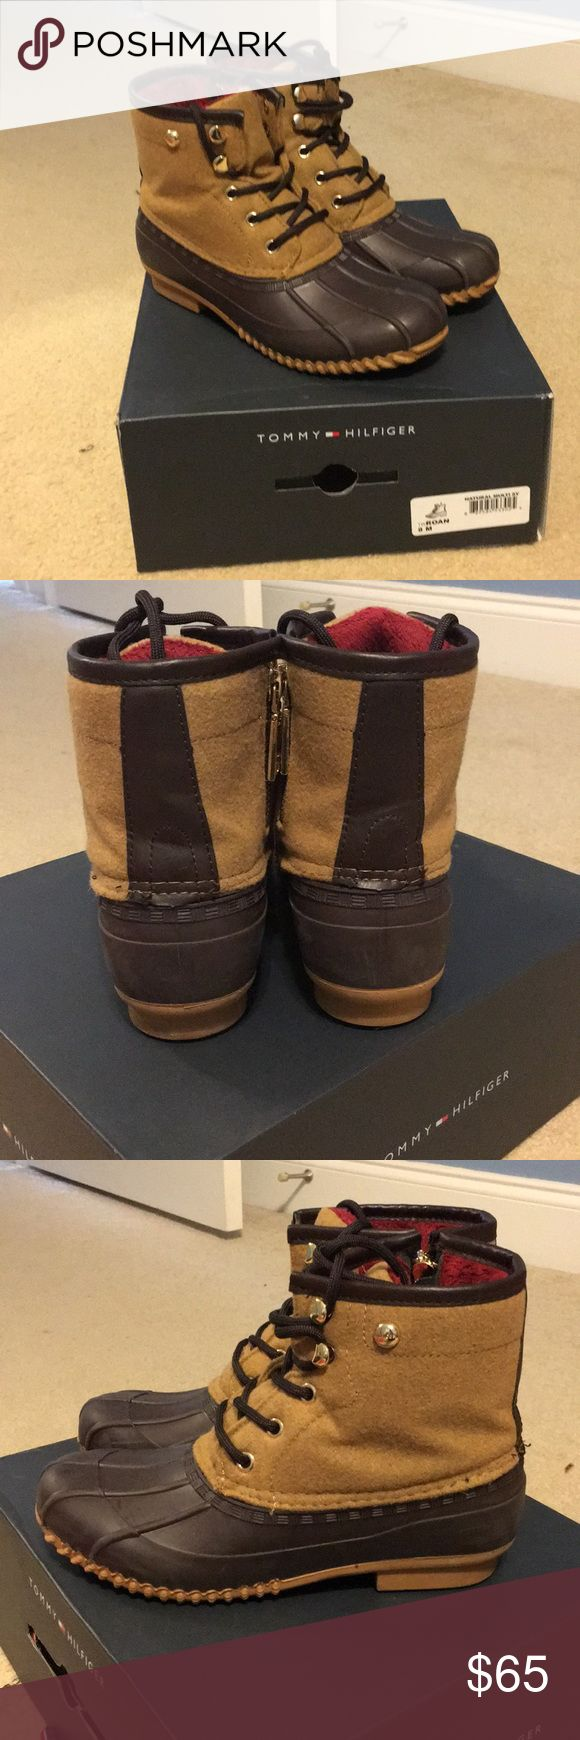 Tommy Hilfiger duck boots These are perfect for the rain or snow! Basically New without tags only been worn a couple times! These are sold out multiple places! Cleaning out my closet and I don't wear these often, comes in the original box! Tommy Hilfiger Shoes Winter & Rain Boots